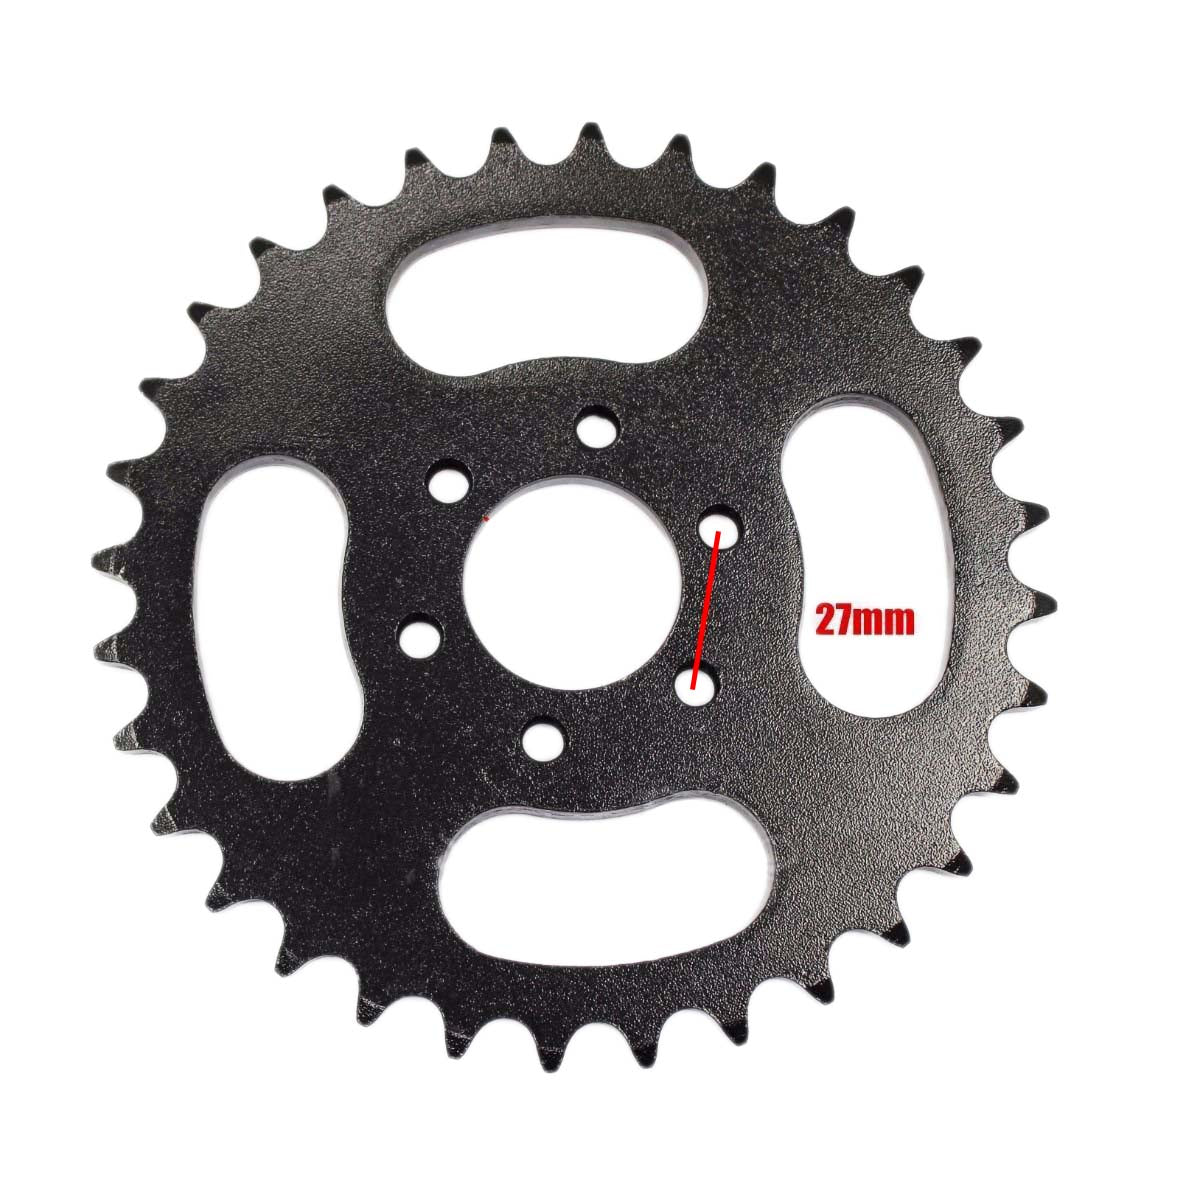 New 32 Tooth 37mm inner Rear Sprocket for 530 32T ATV Quad Go Kart Motor AU